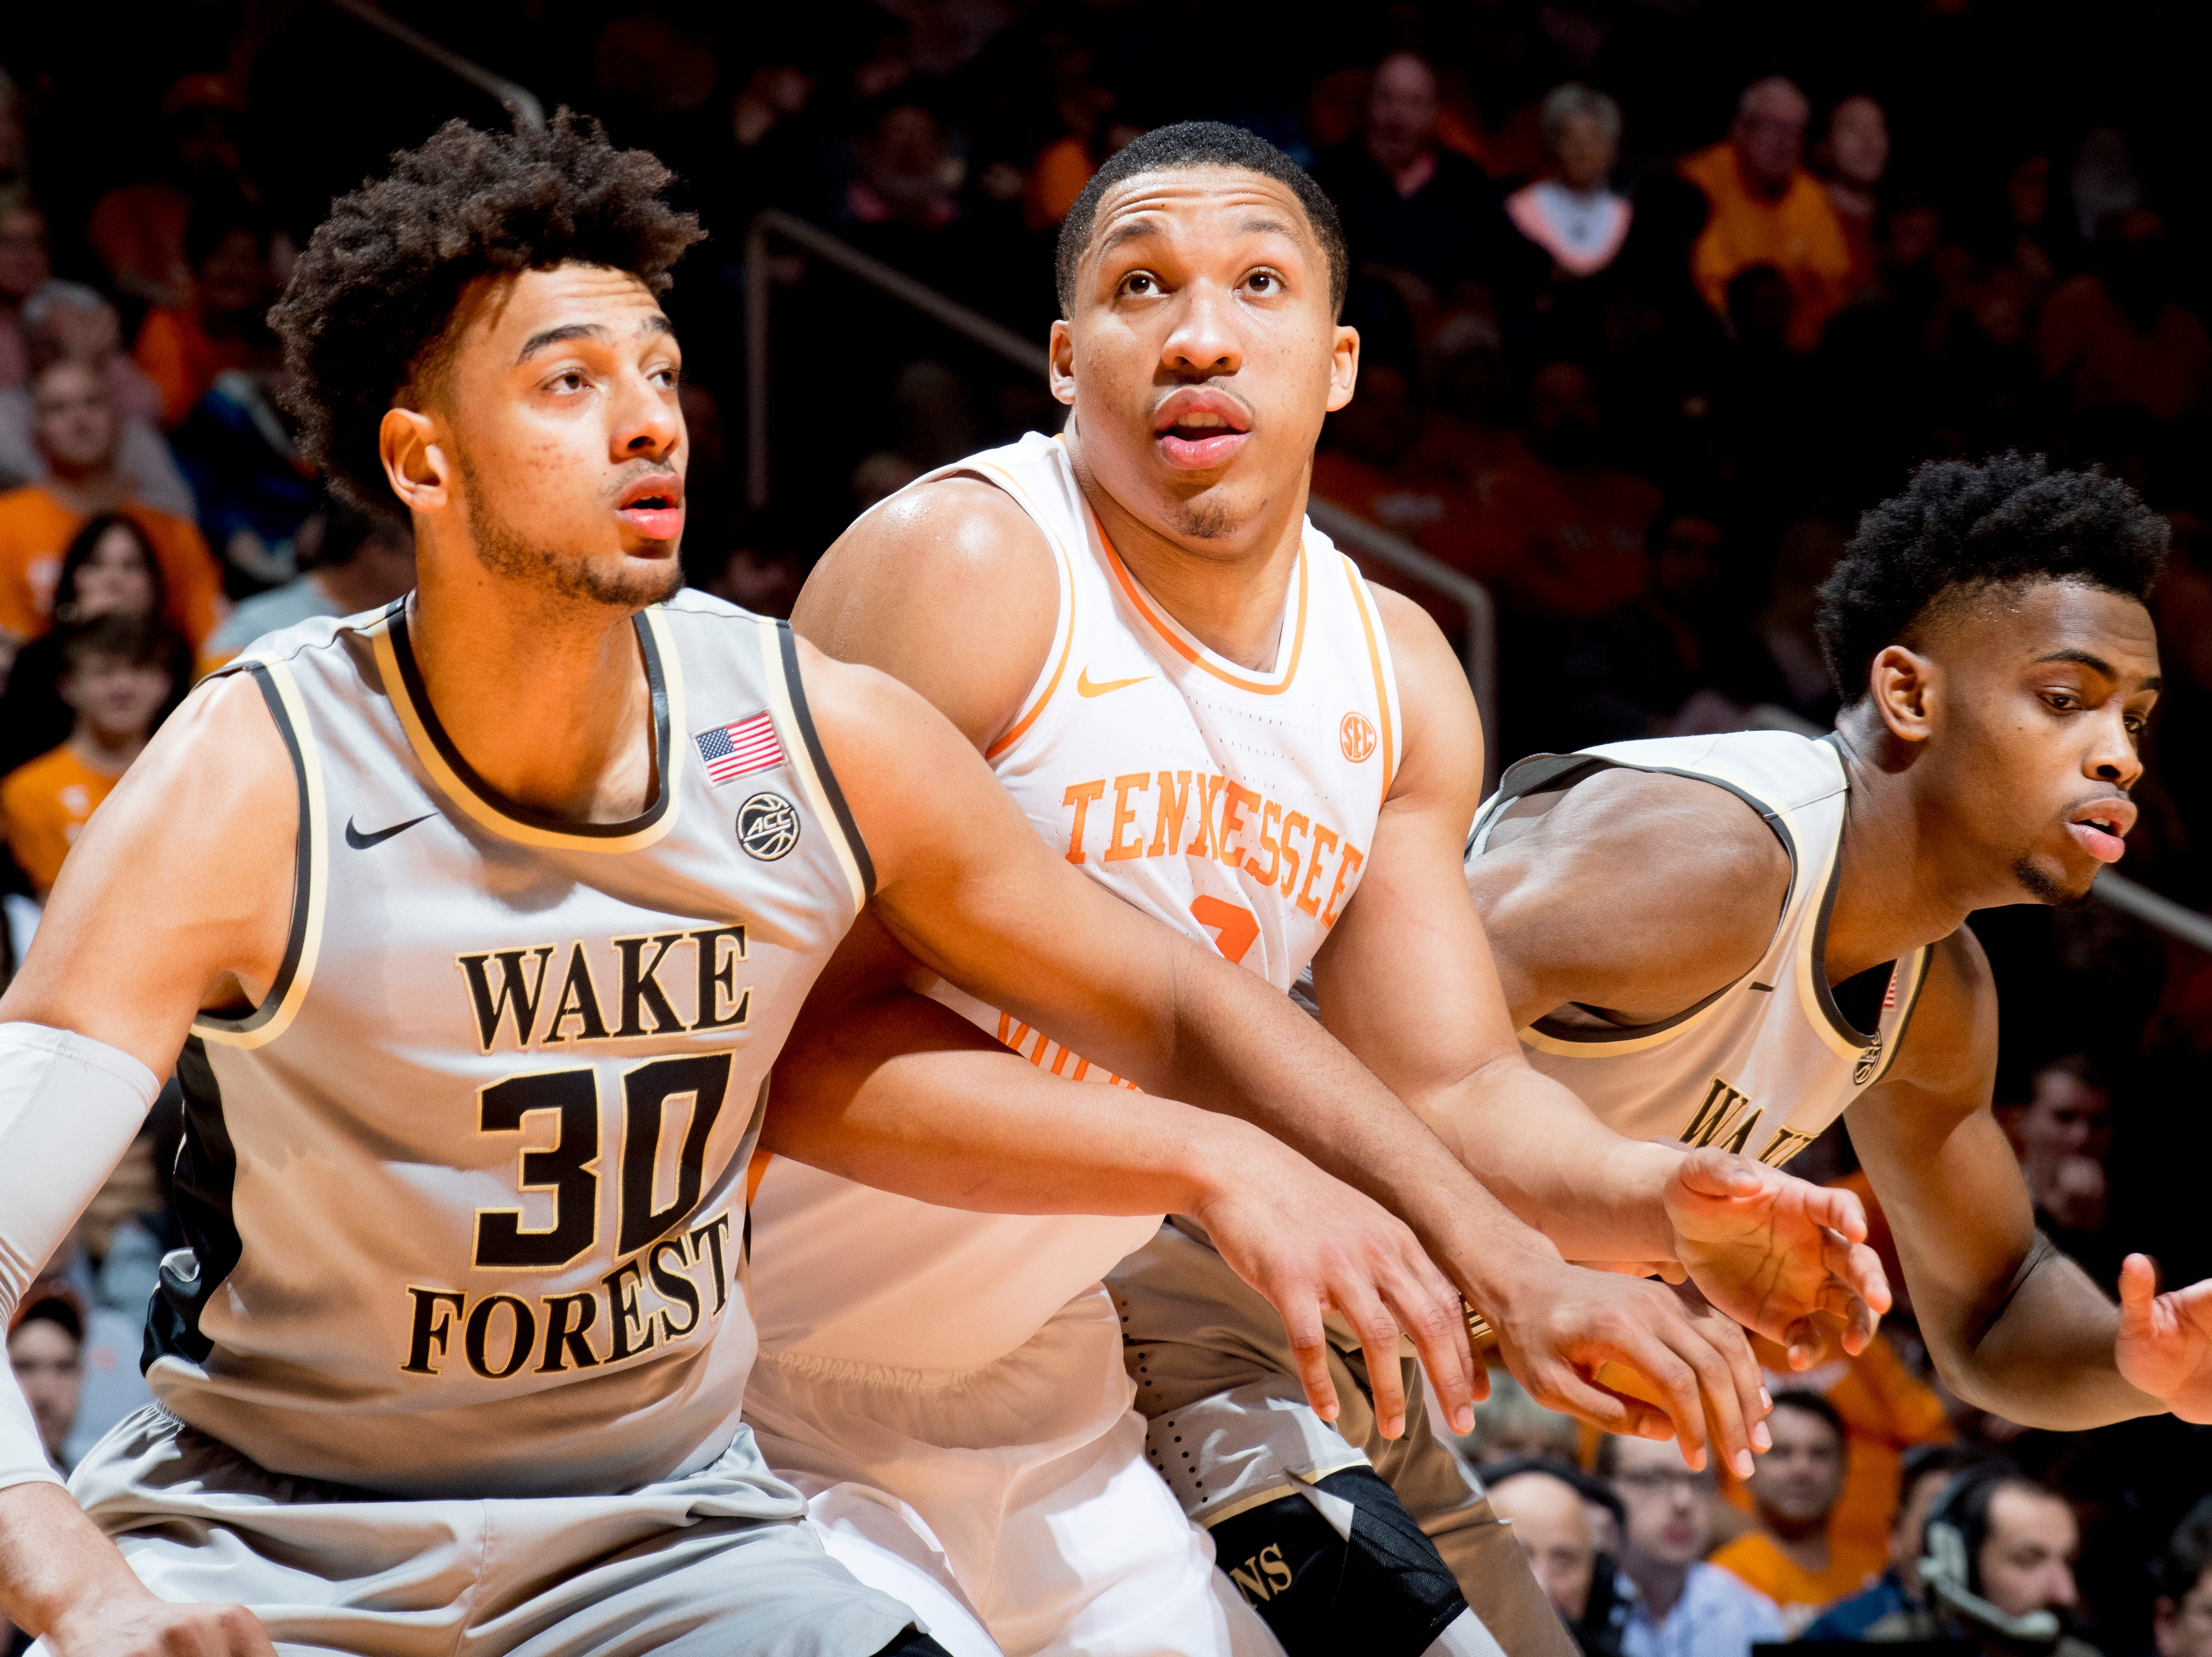 Wake Forest center Olivier Sara (30), Tennessee forward Grant Williams (2) and Wake Forest forward Jaylen Hoard (10) go for the rebound during a game between Tennessee and Wake Forest at Thompson-Boling Arena in Knoxville, Tennessee on Saturday, December 22, 2018.